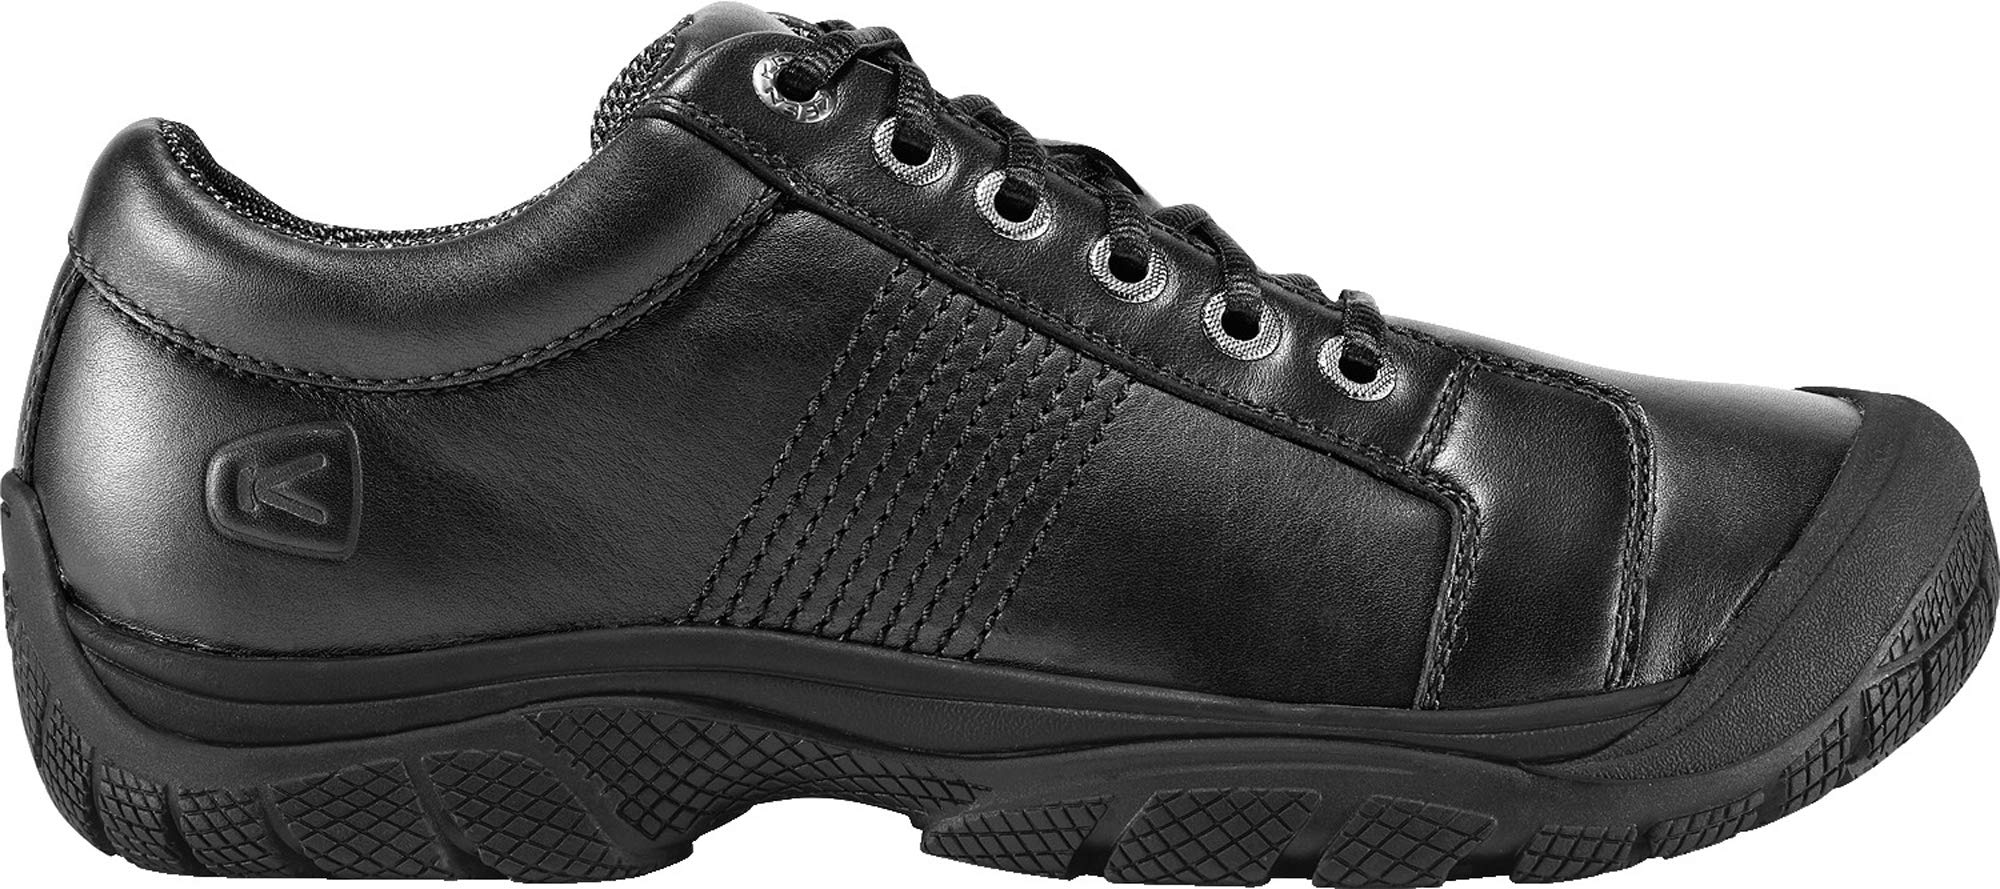 KEEN Utility Men's PTC Oxford Work Shoe,Black,10.5 M US by KEEN Utility